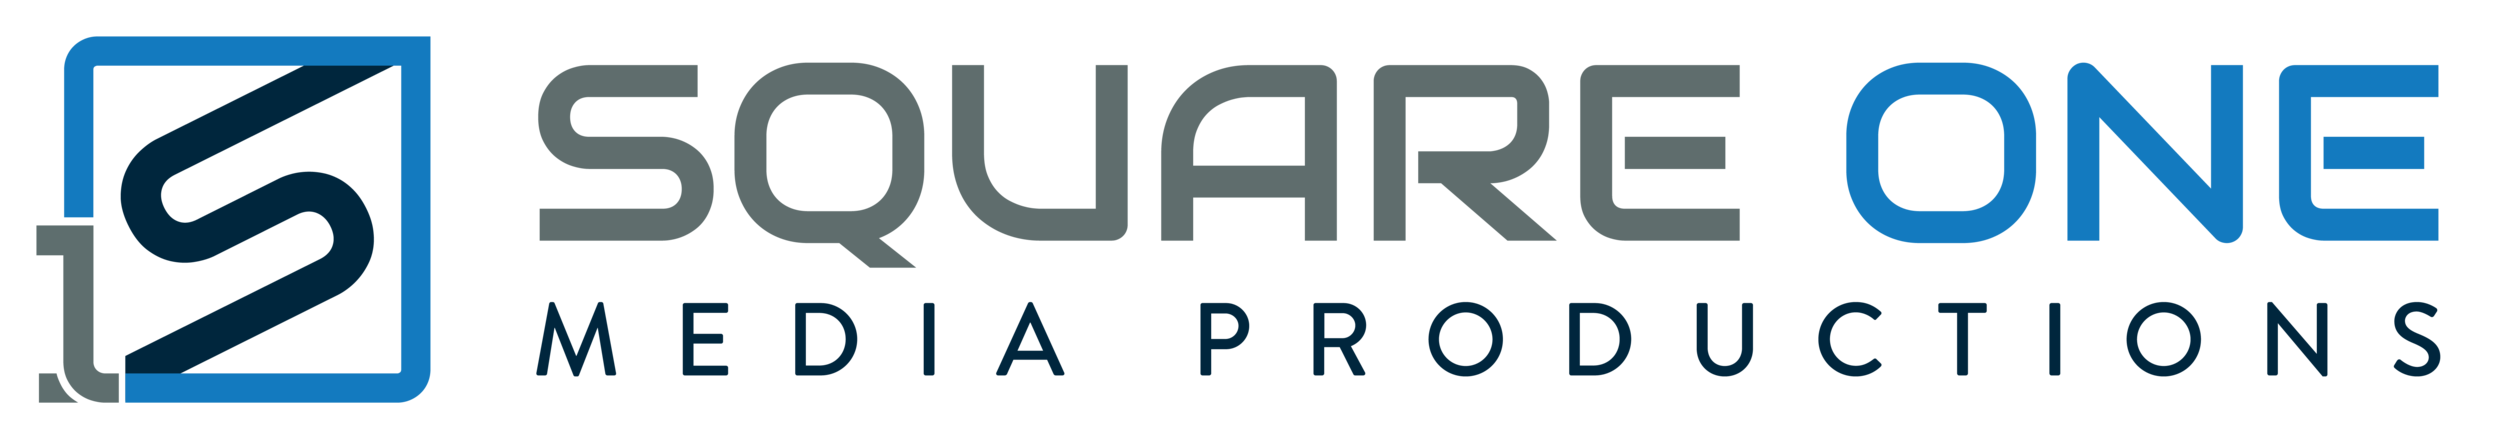 squareonemediaproductions_logo_primary-01.png